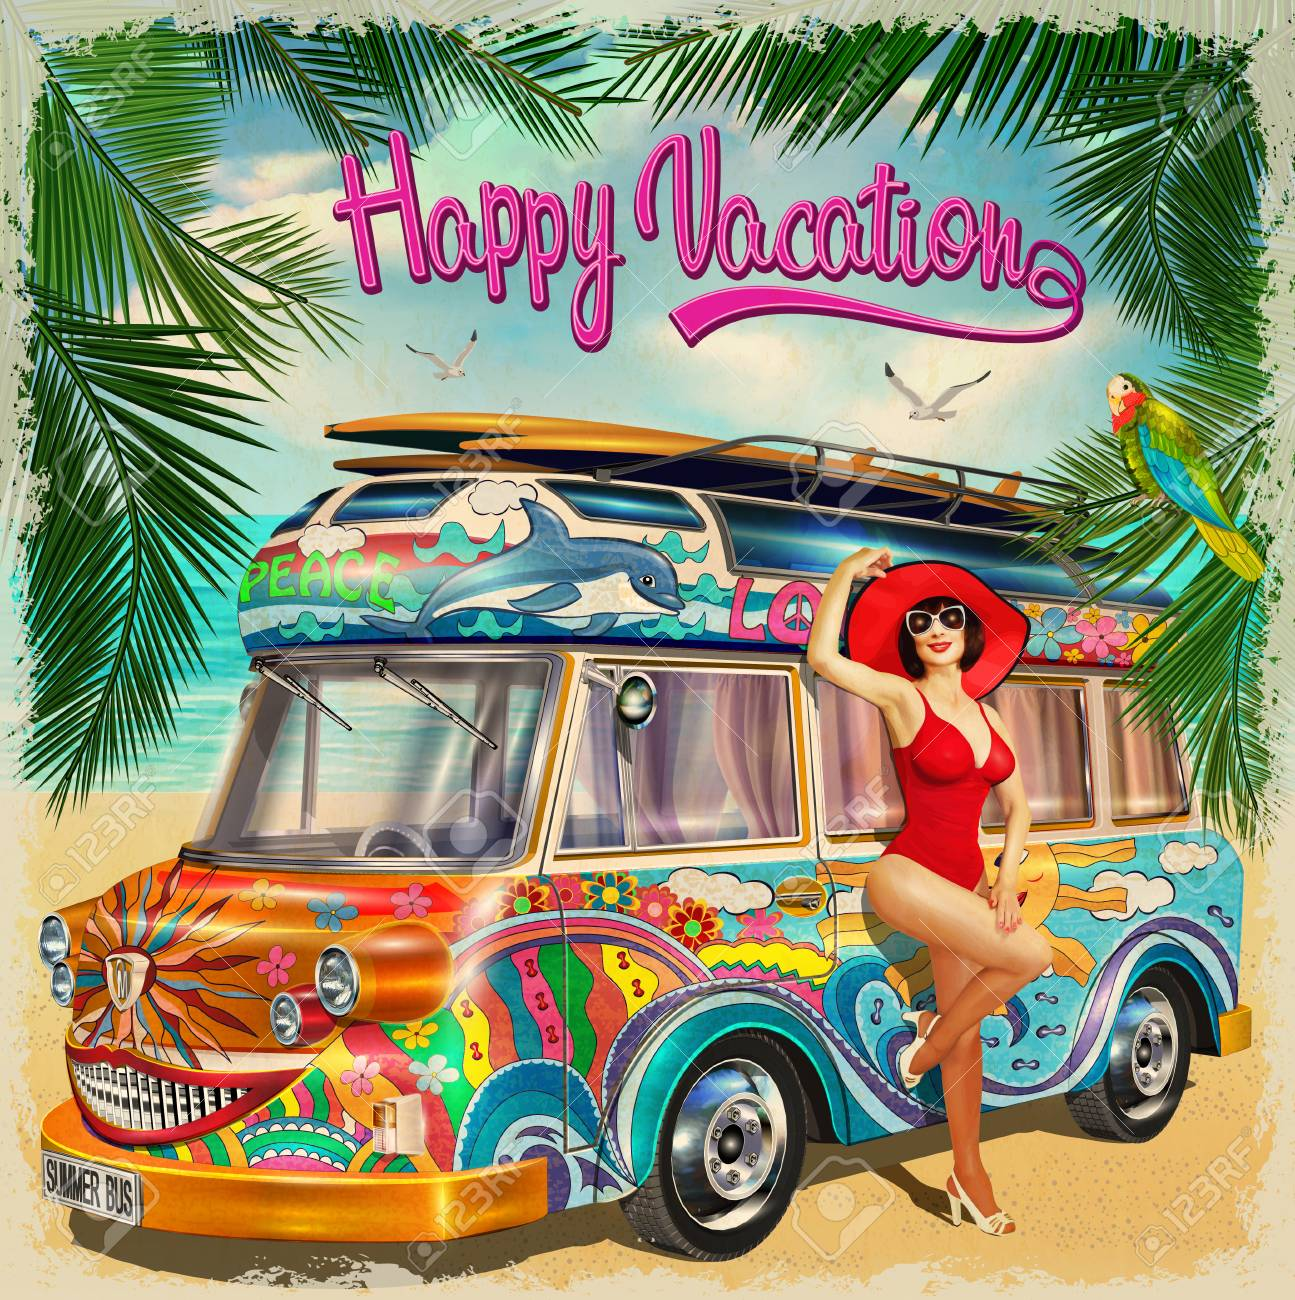 Summer holidays poster with retro bus and pin up girl.